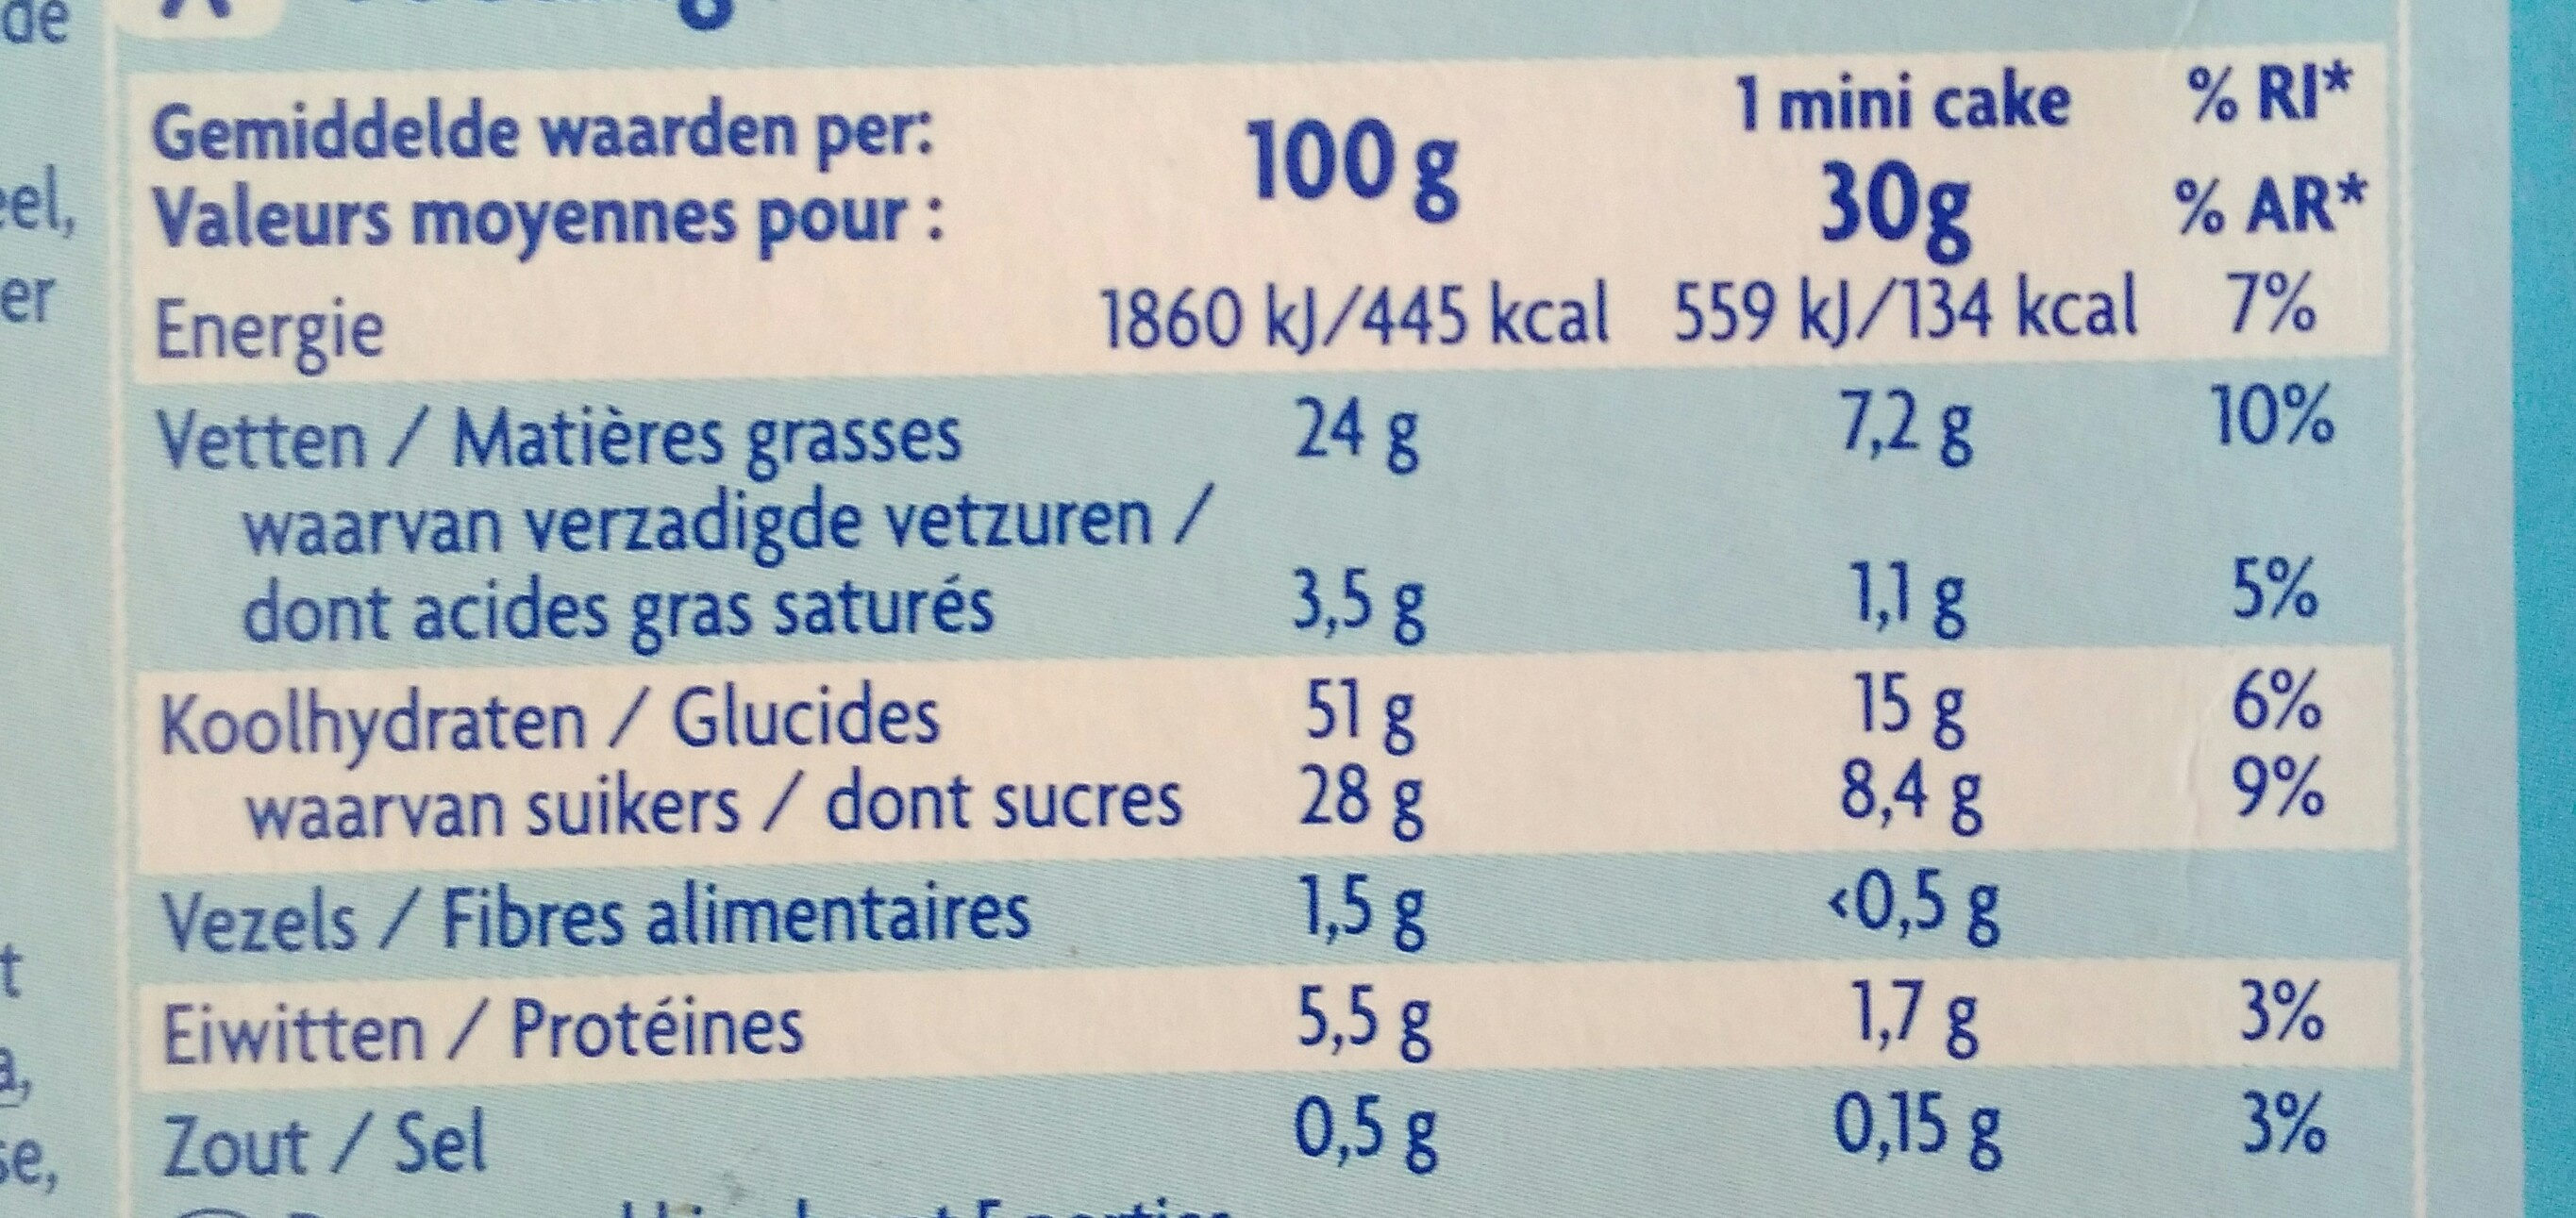 mini cakes marbrés - Nutrition facts - fr